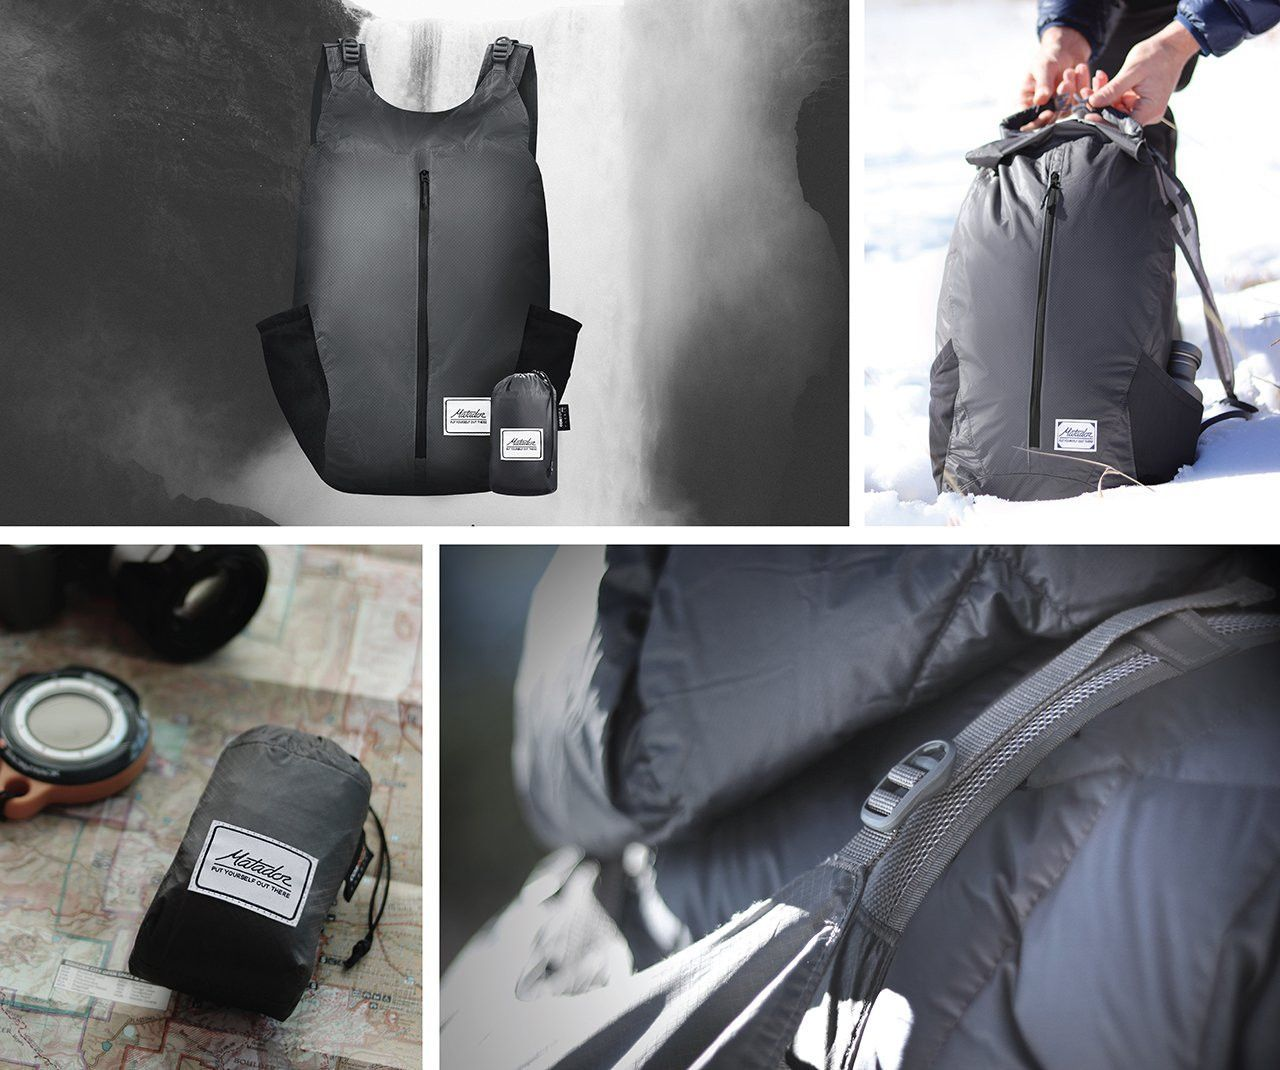 The FreeRain 24 Waterproof Packable Backpack from Matador features the  finest materials available in the outdoor industry to offer superior  performance in ... 52dba7f39e06e